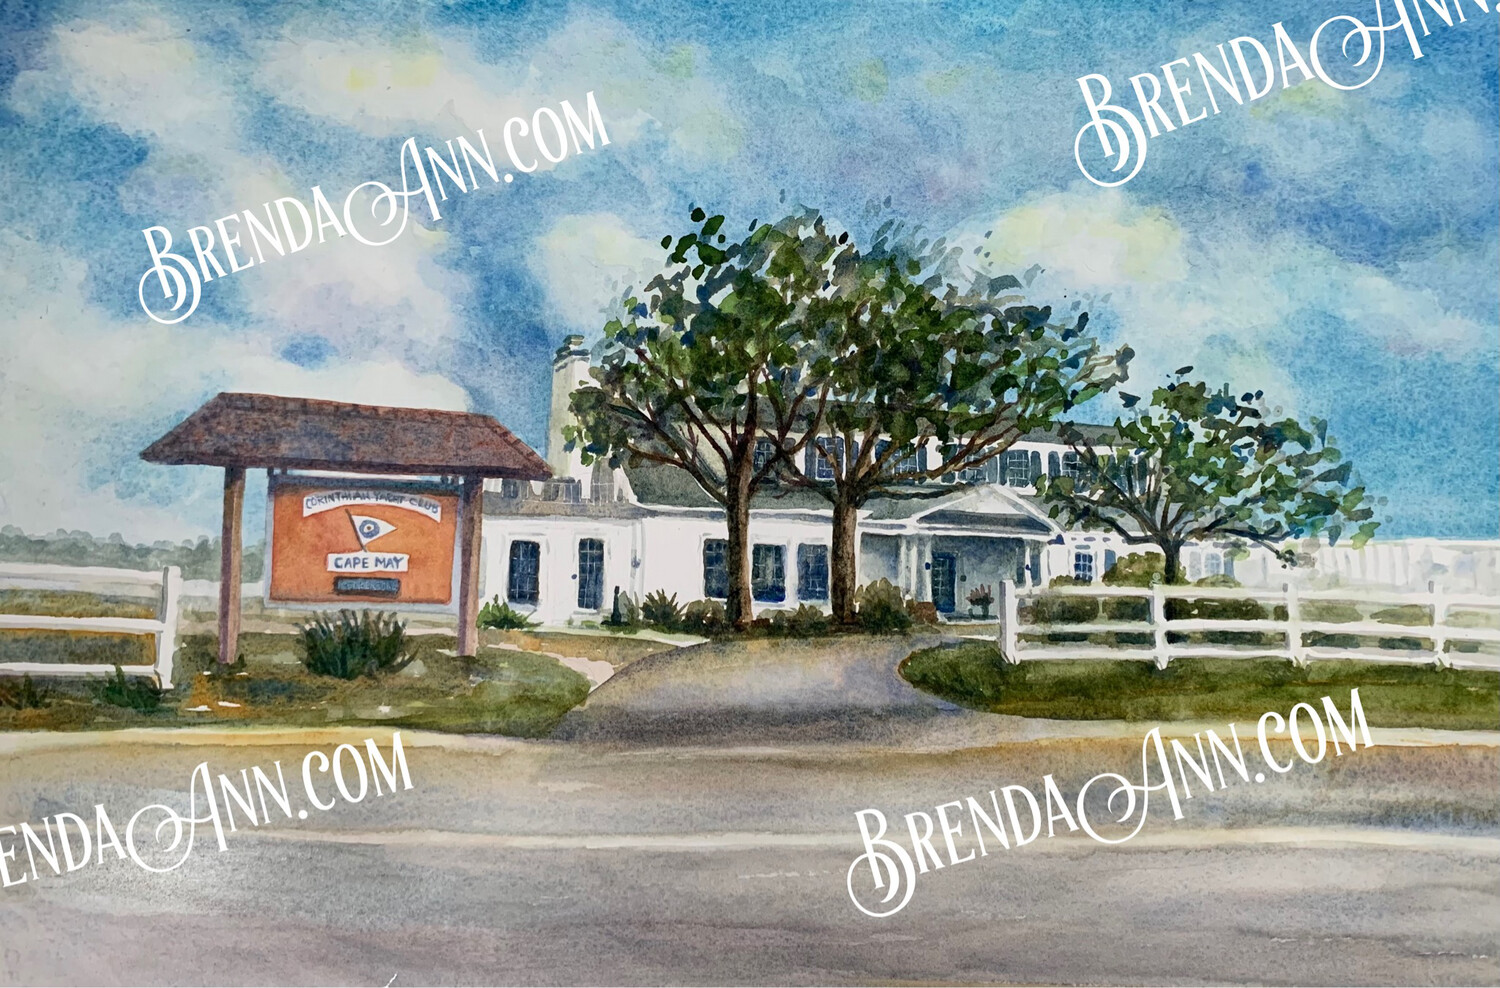 Wedding Save the Date Cards - Corinthian Yacht Club of Cape May NJ - Watercolor by Brenda Ann